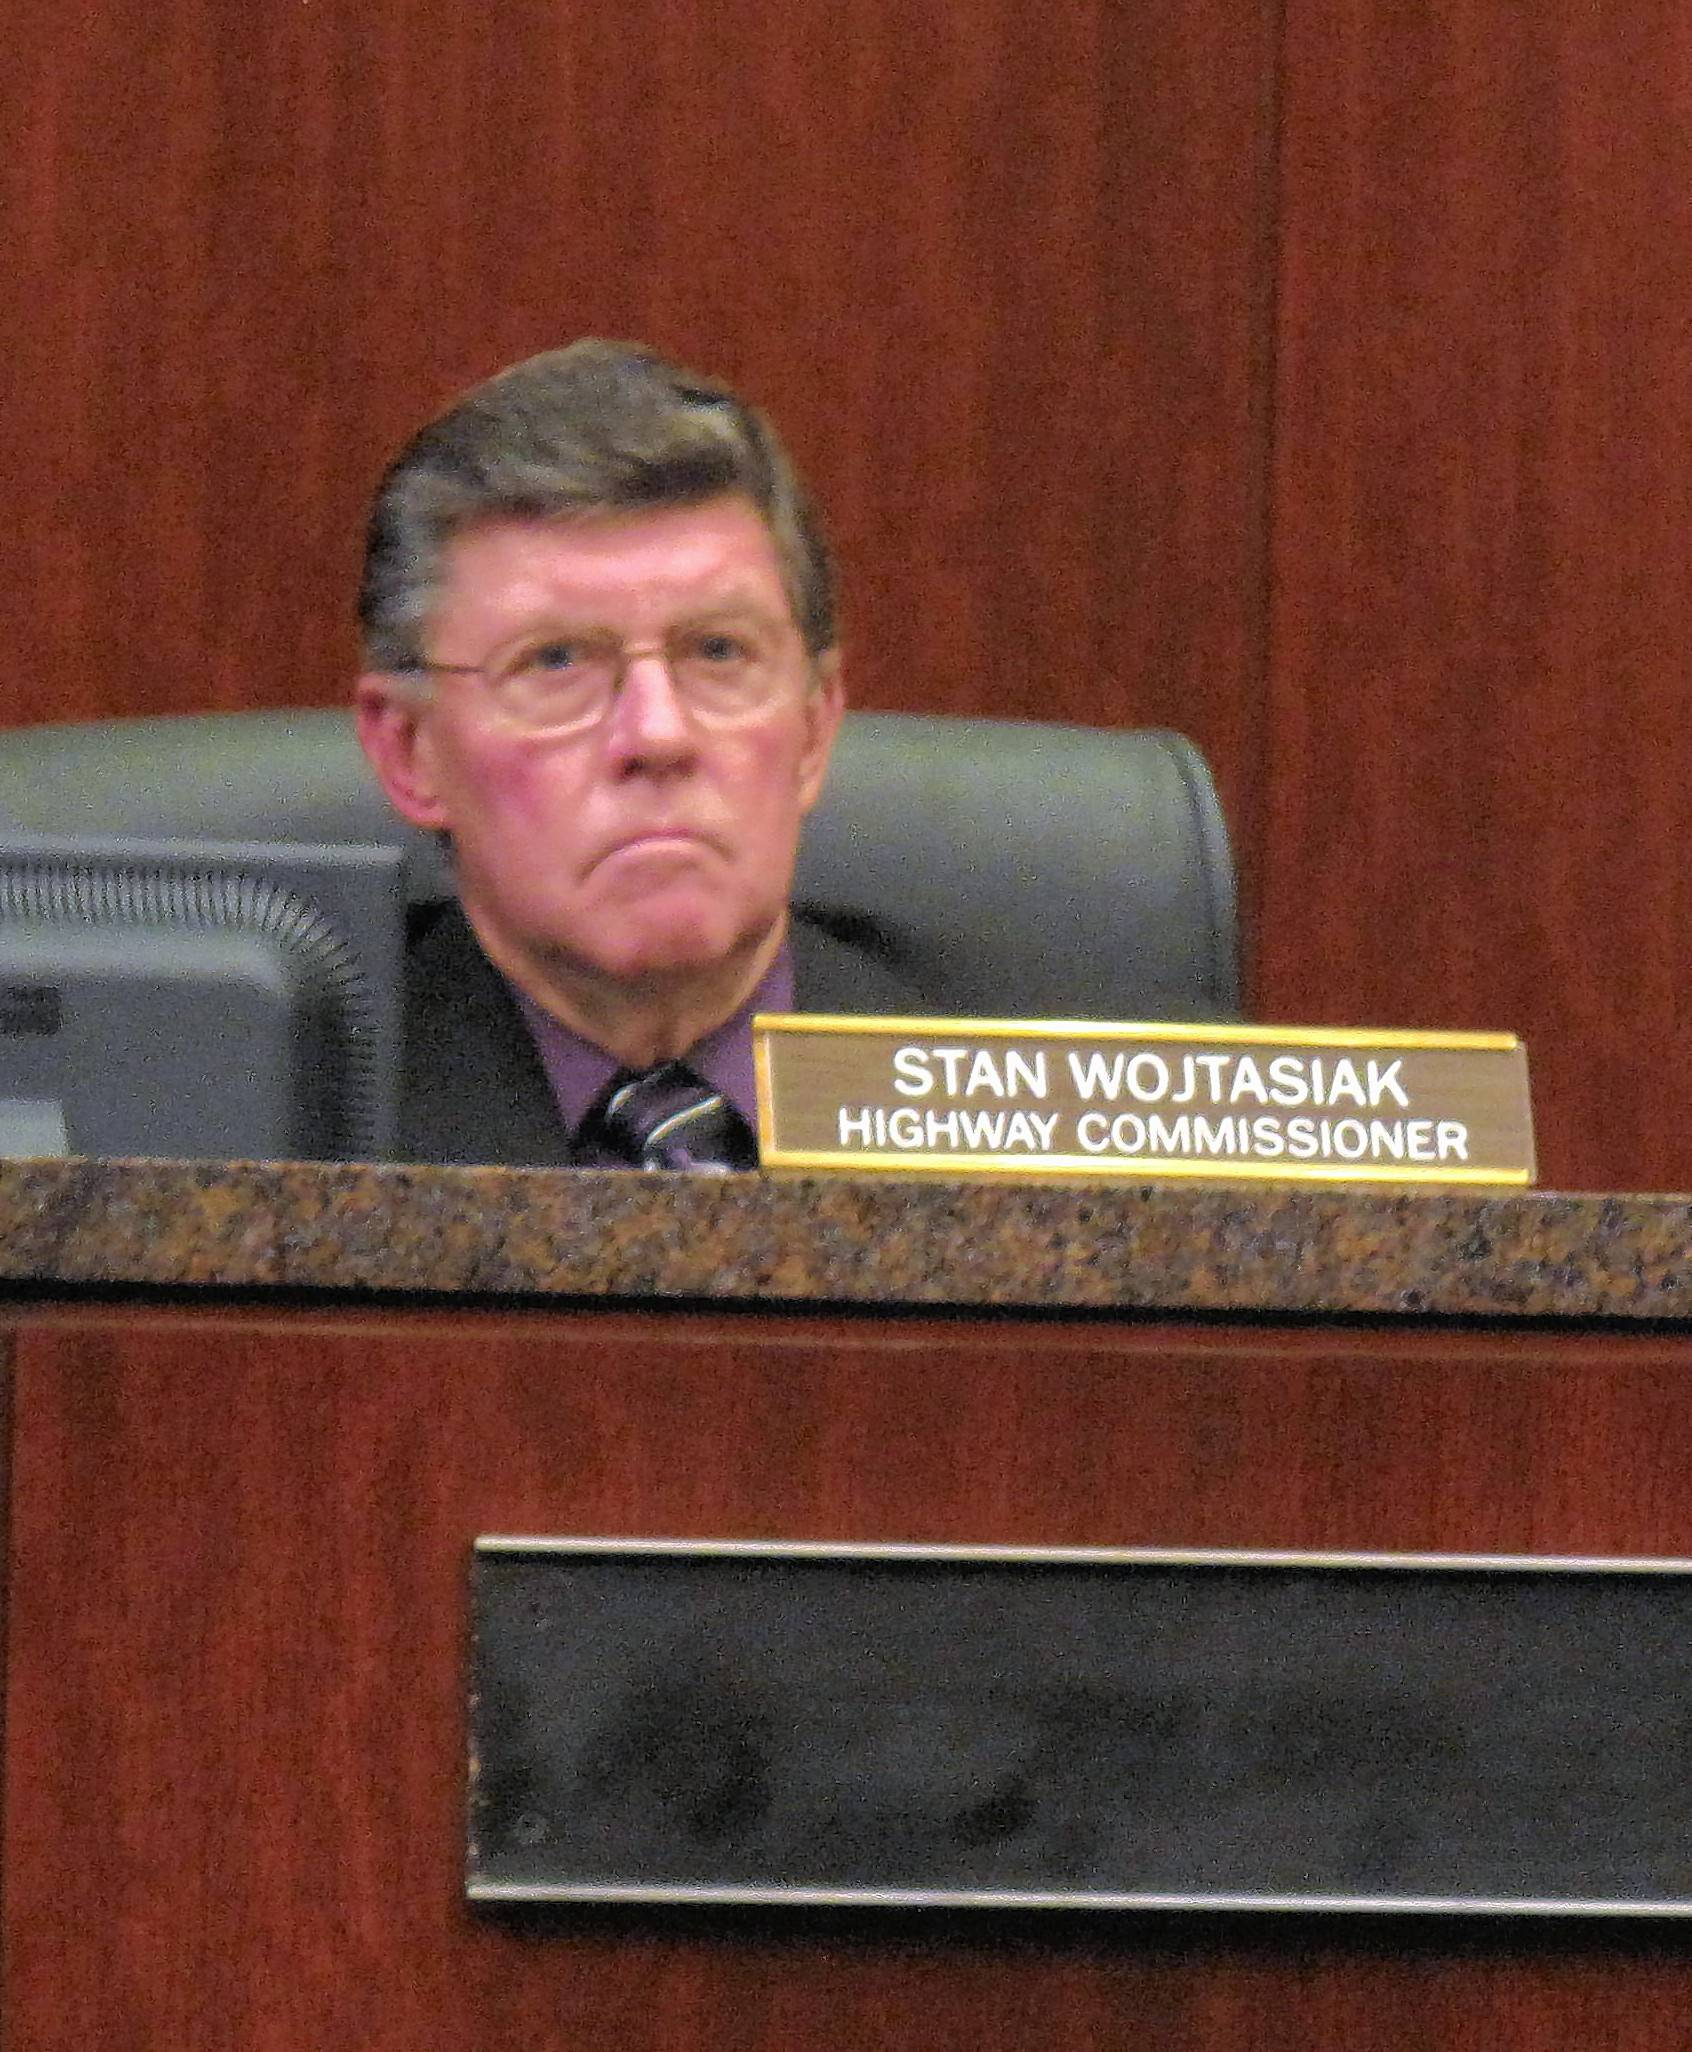 Naperville Township Highway commissioner files lawsuit over budget cuts